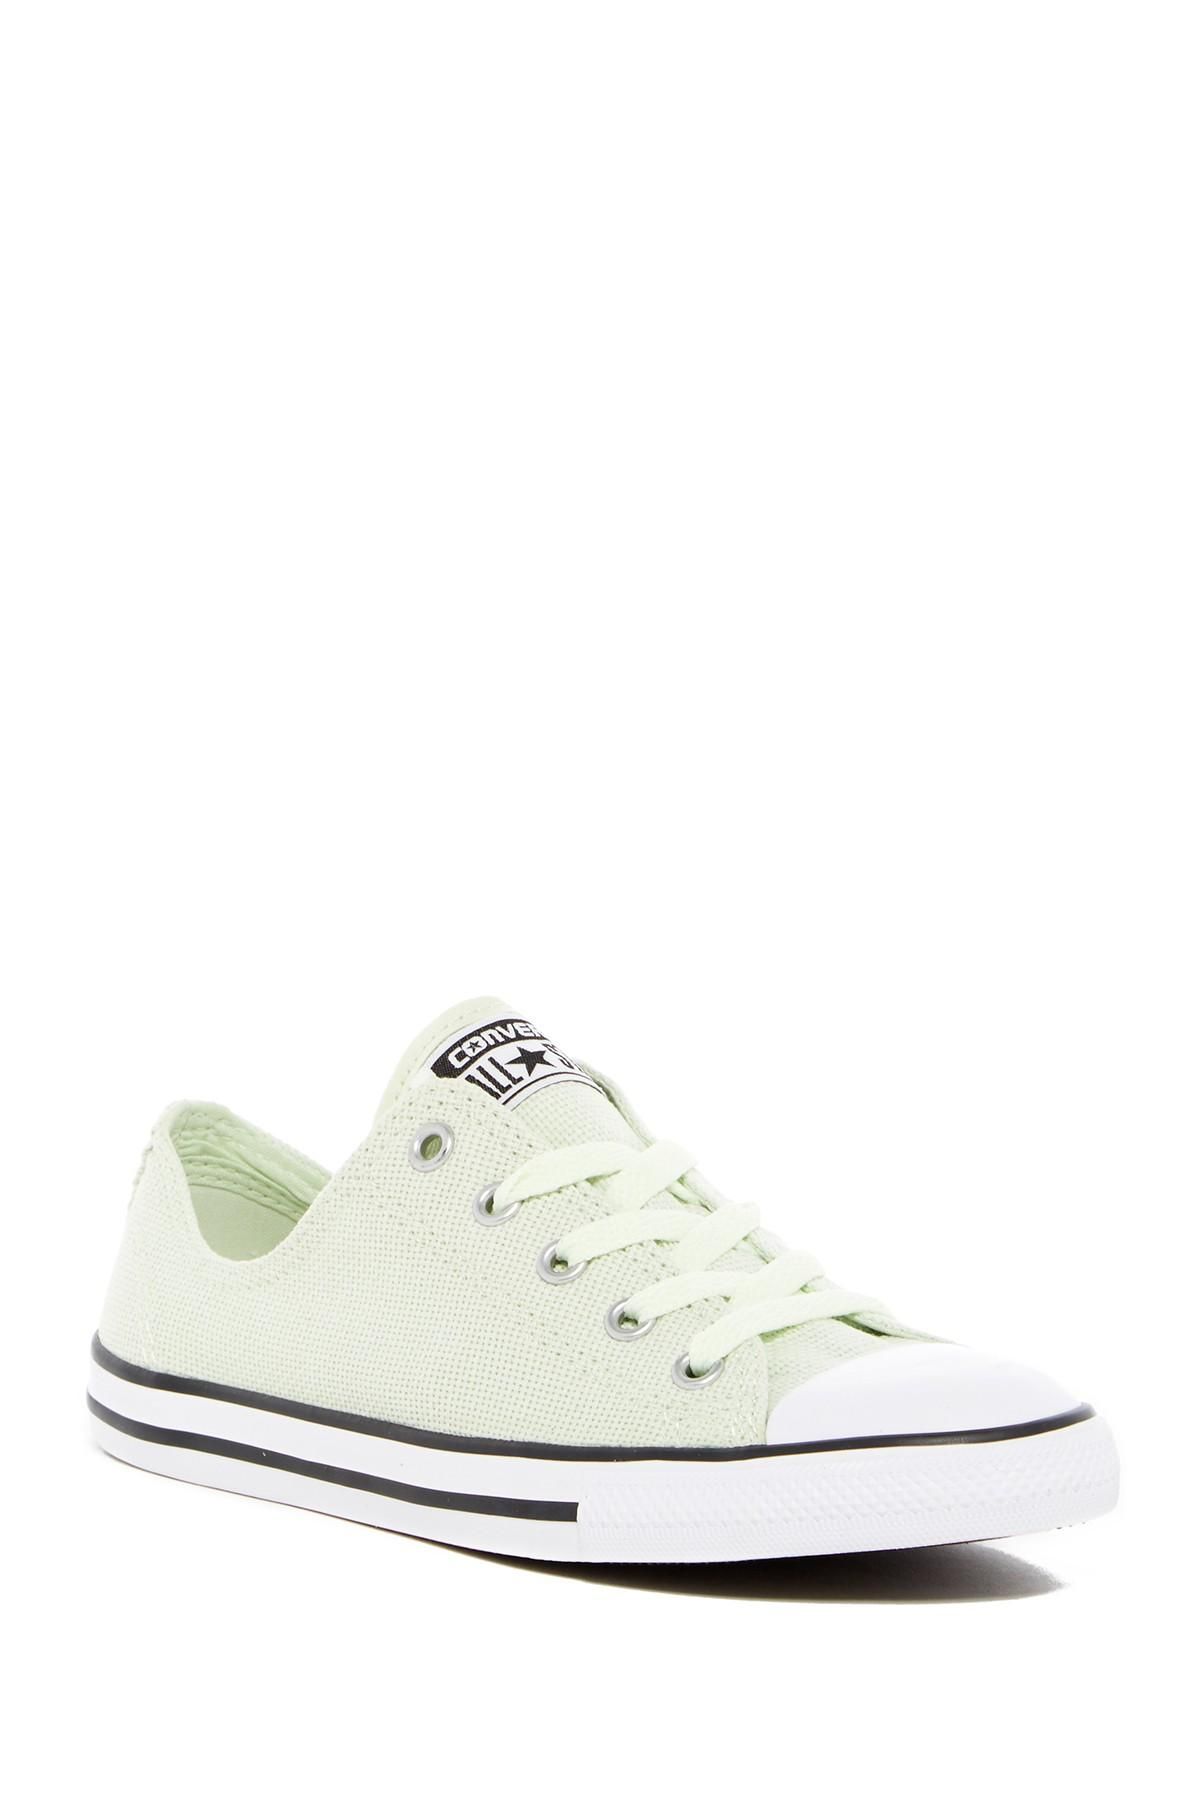 Converse Chuck Taylor All Star Dainty Oxford Sneaker